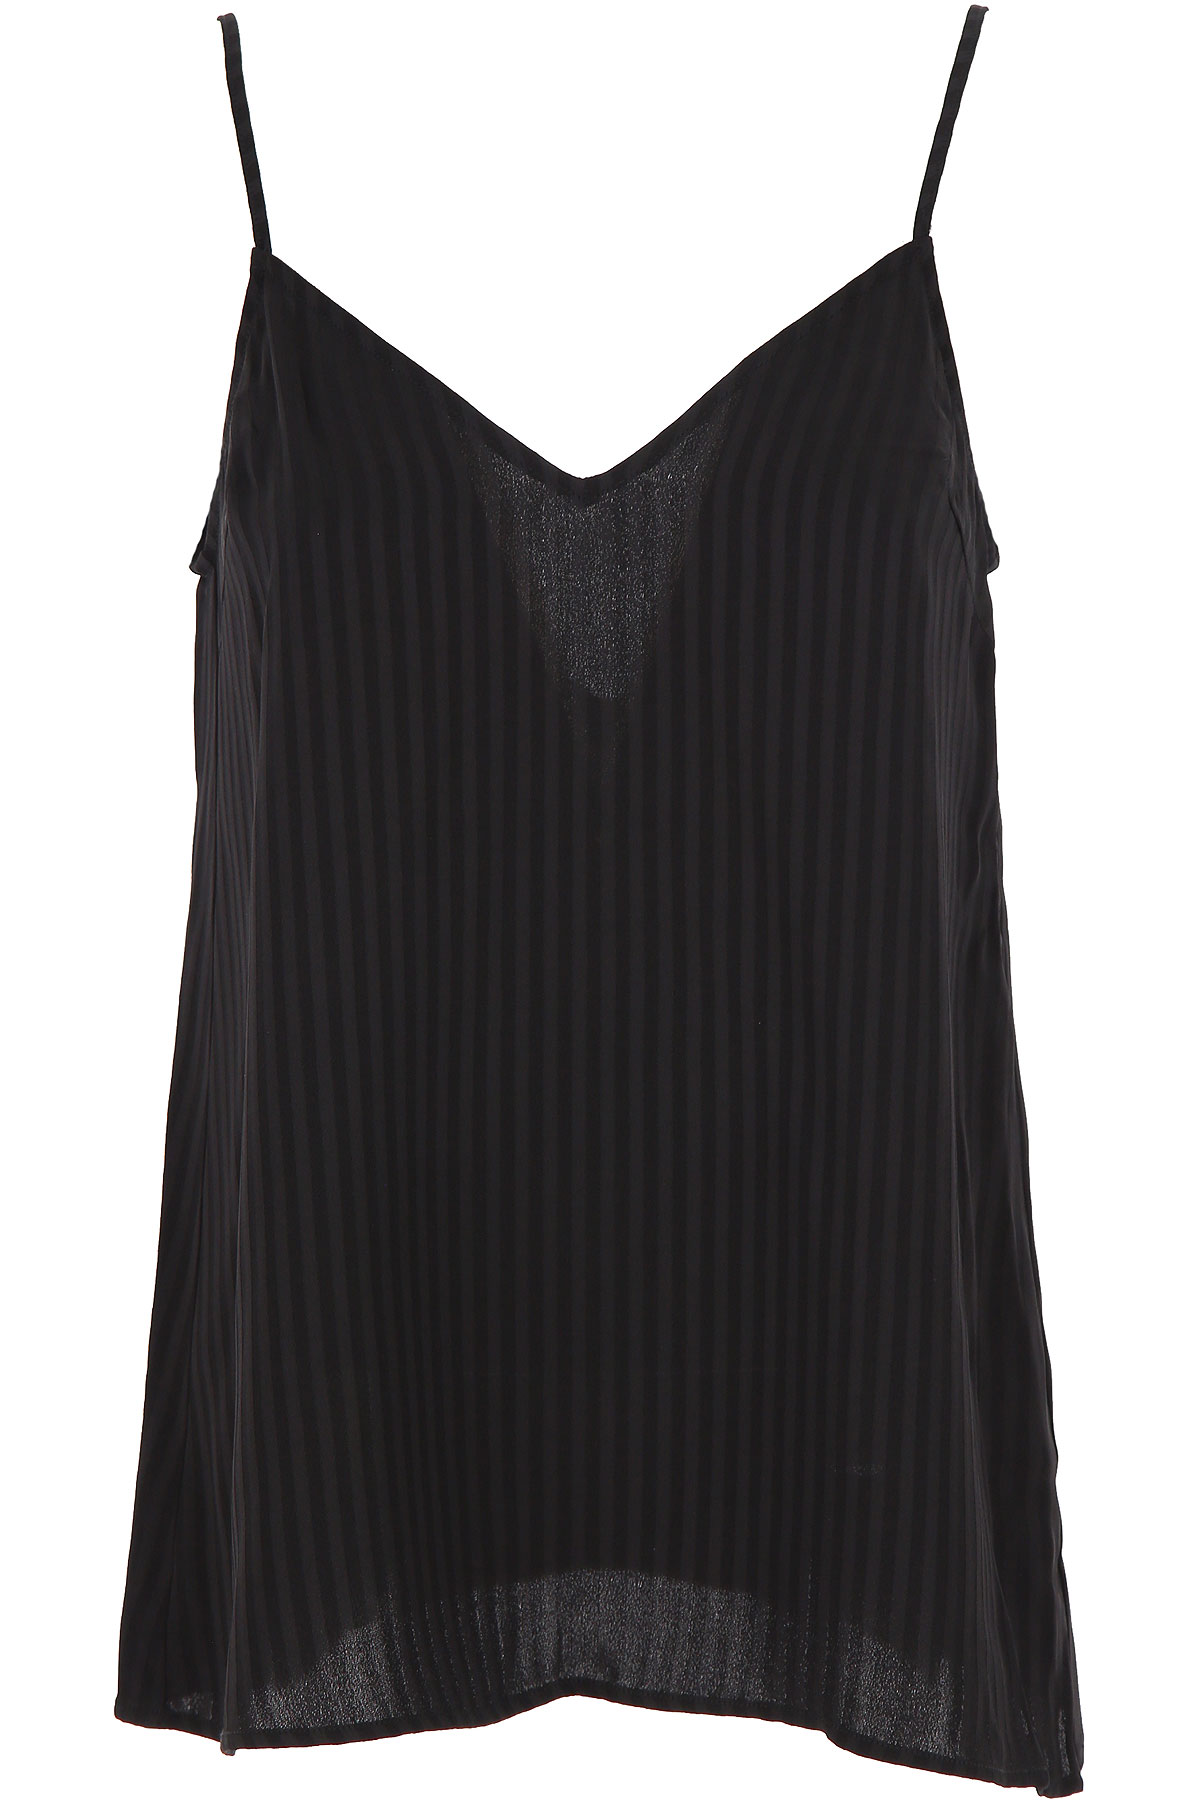 Federica Tosi Top for Women On Sale, Black, viscosa, 2019, 2 4 6